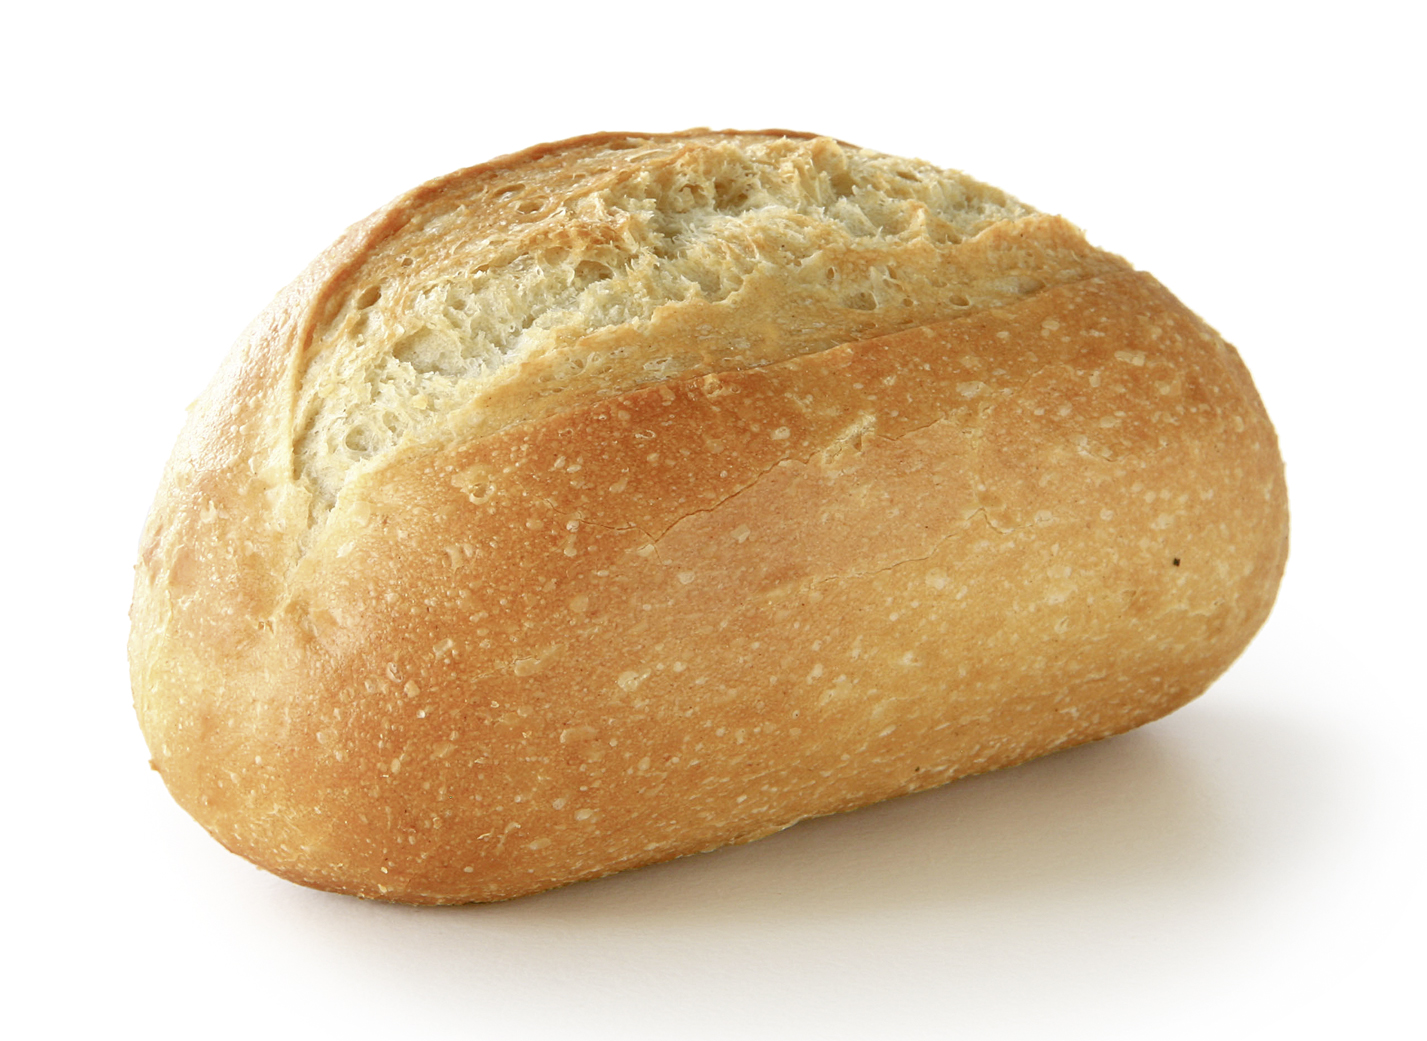 Baguette Roll - Wheat roll baked according to the French tradition length: 13 cm